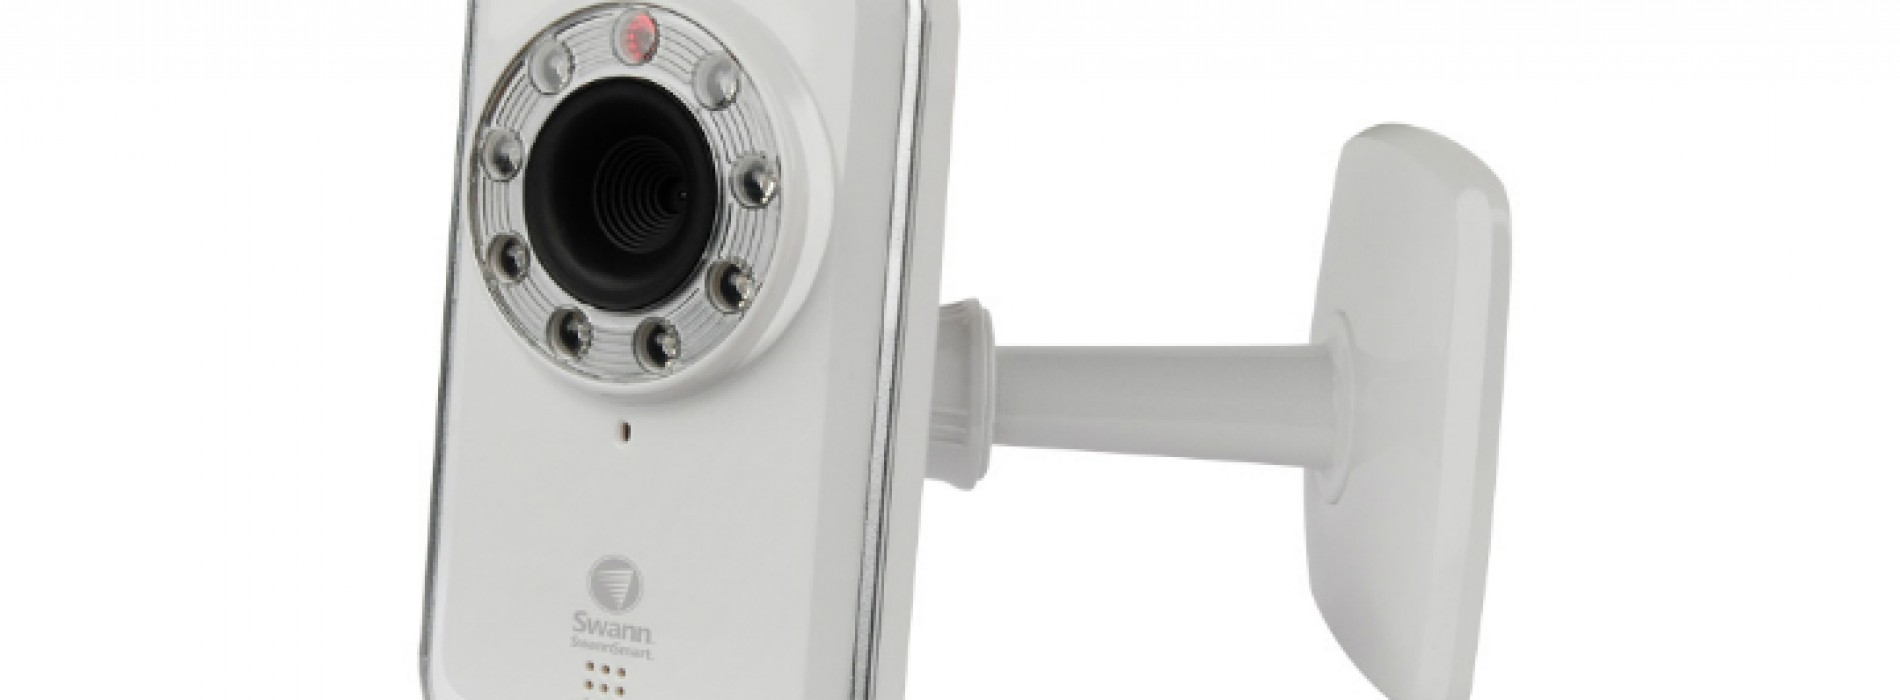 Product Highlight: SwannSmart Wi-Fi network camera